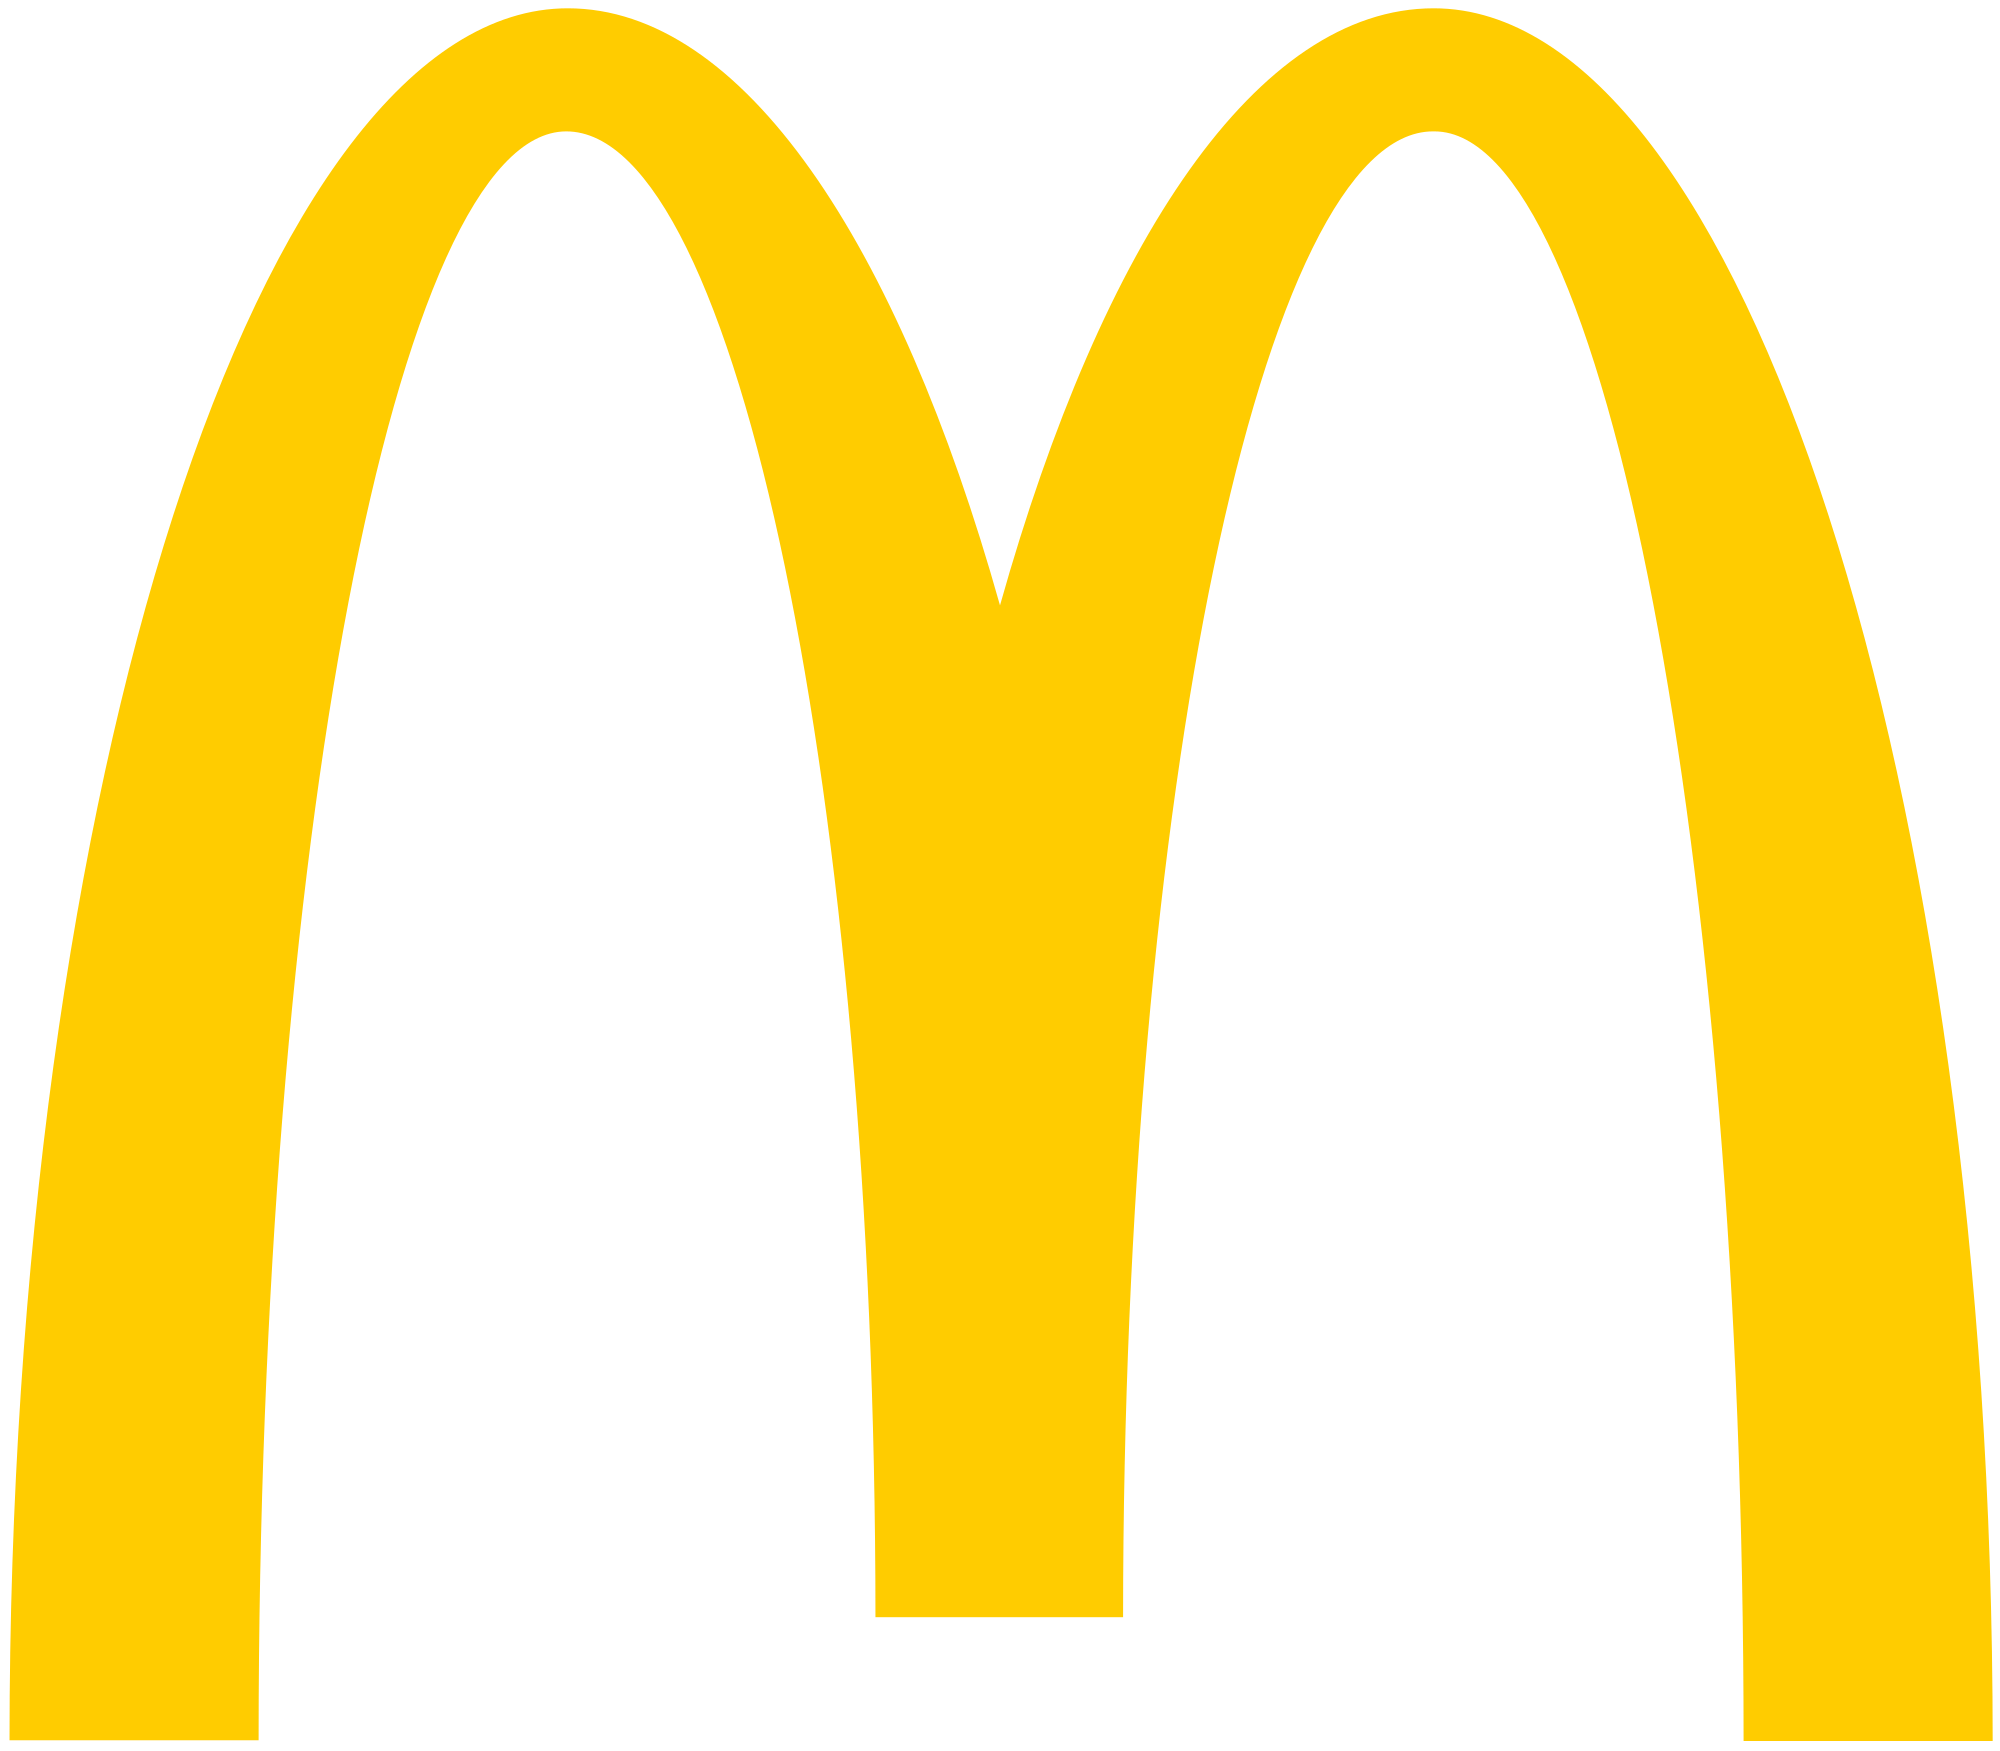 McDonald's Logo - File:McDonald's Golden Arches.svg - Wikimedia Commons